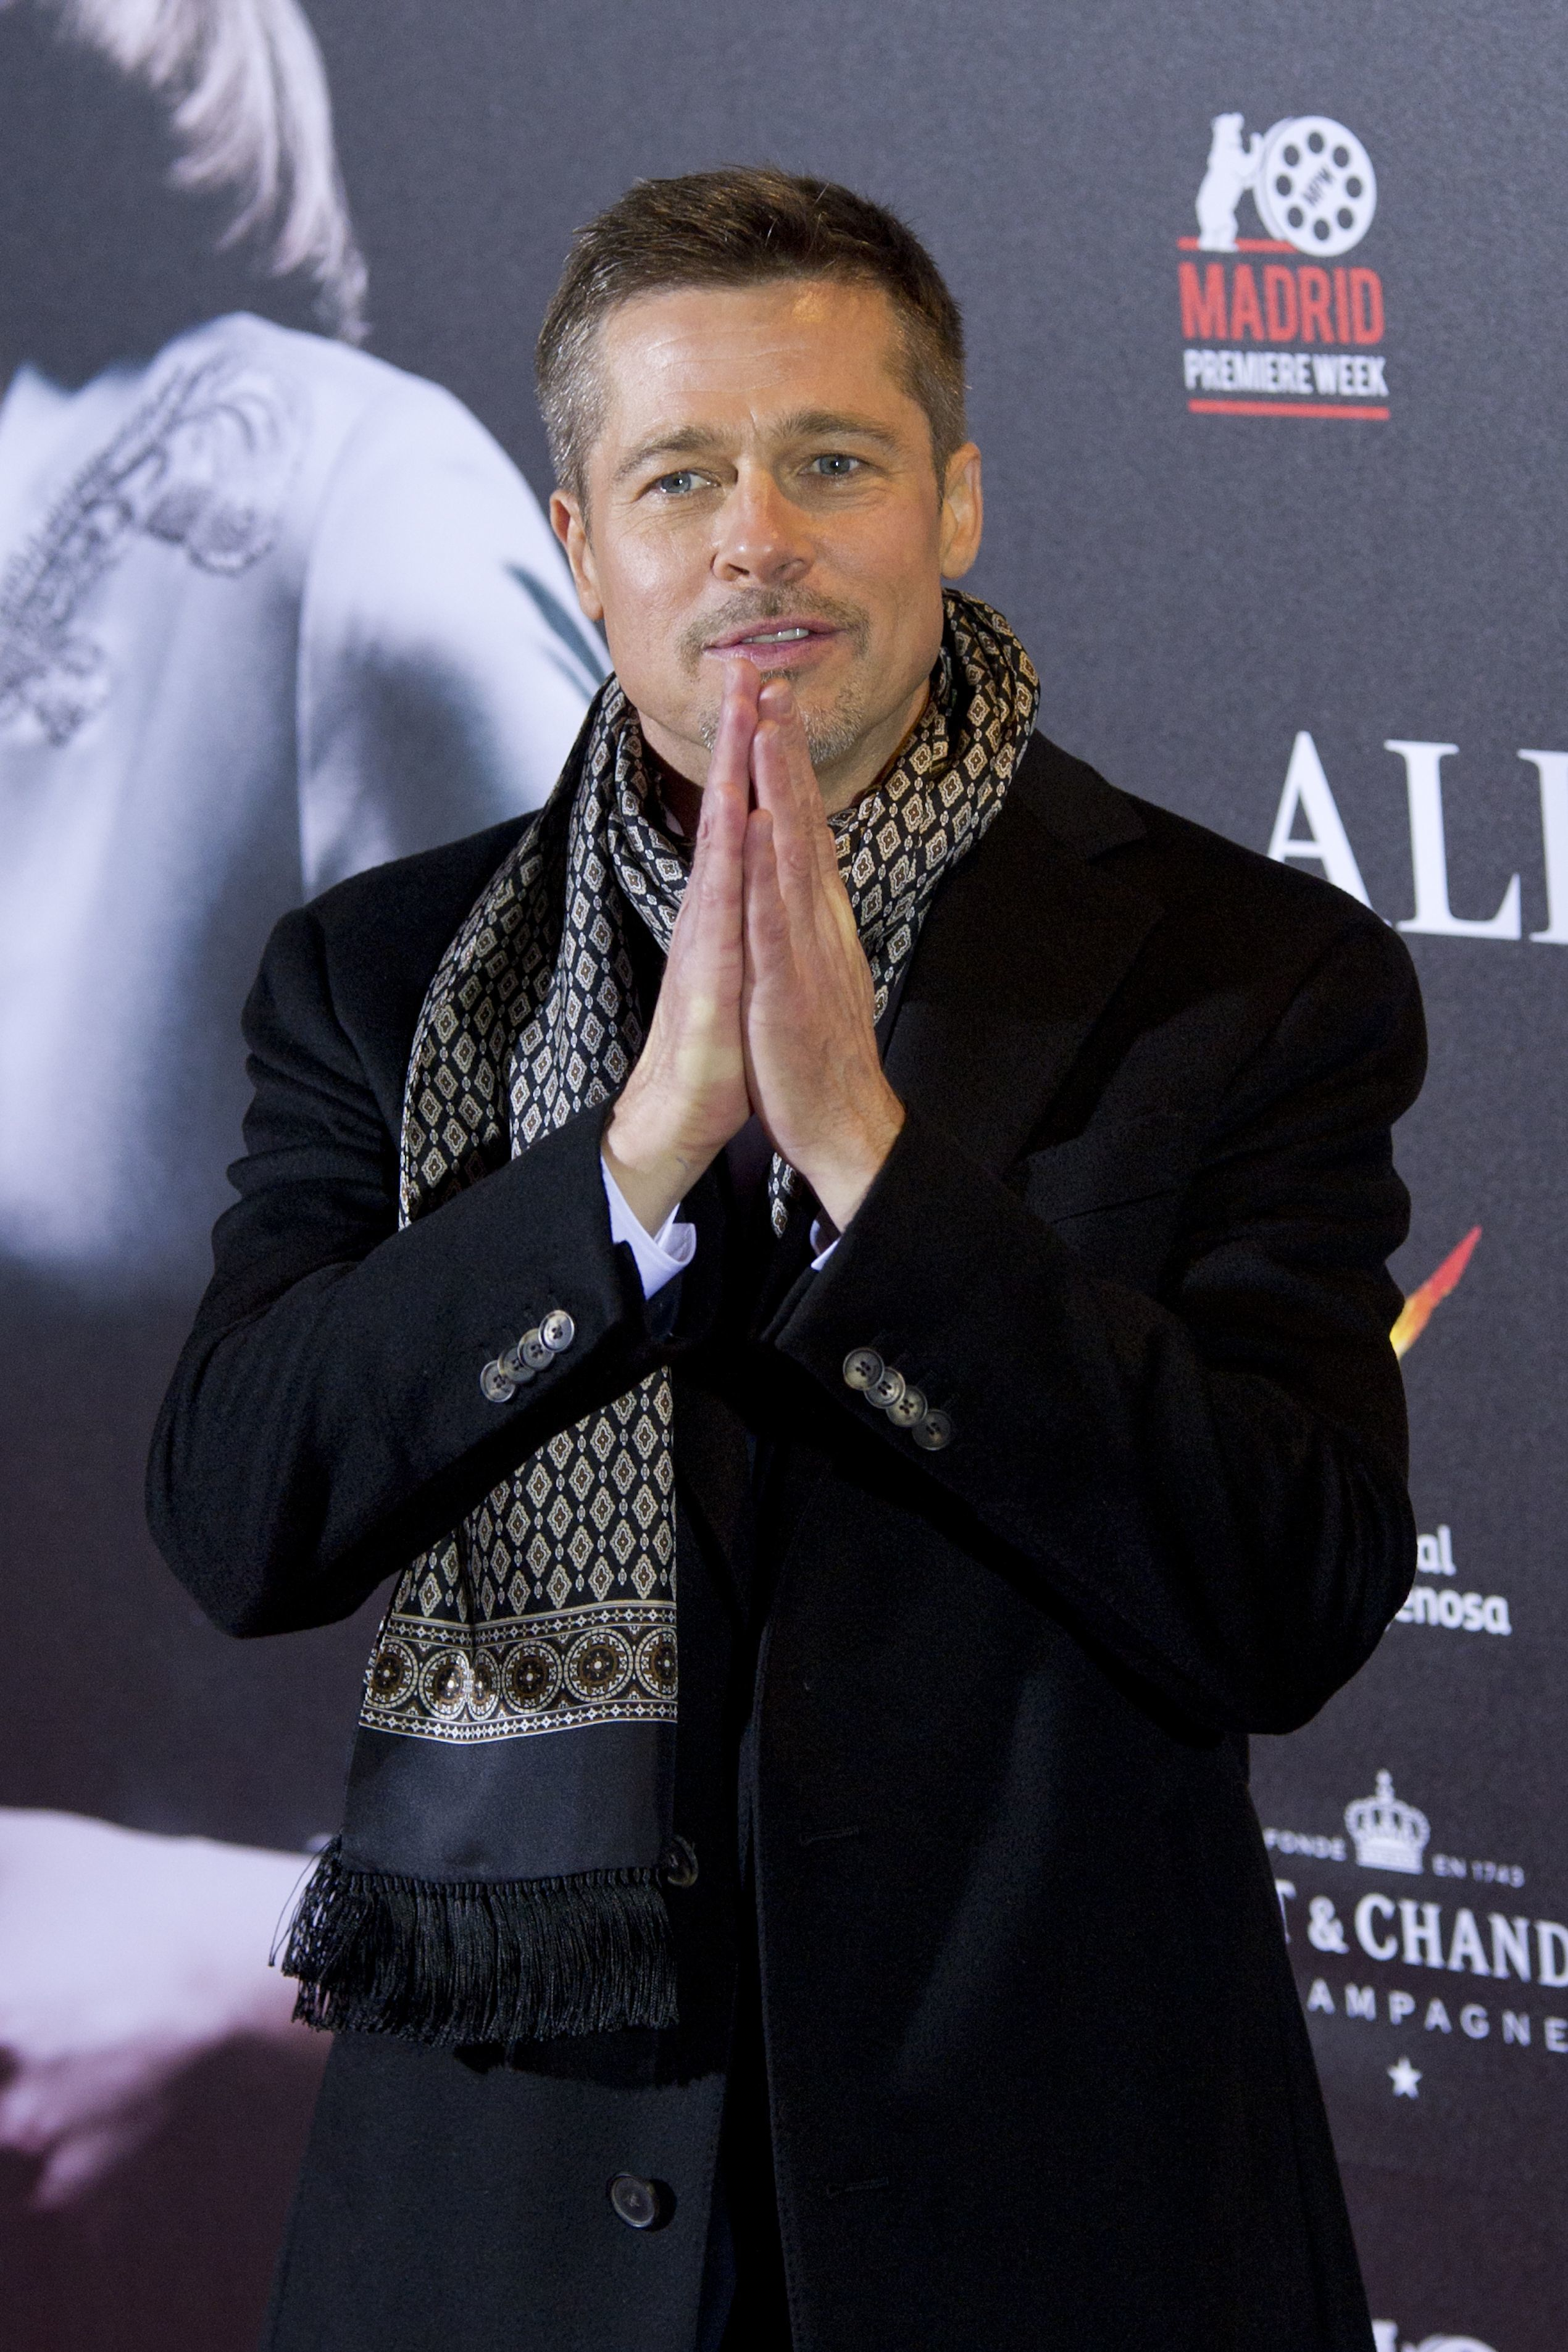 """Brad Pitt attends the premiere of """"Allied"""" in Madrid, Spain, on Nov. 22, 2016."""